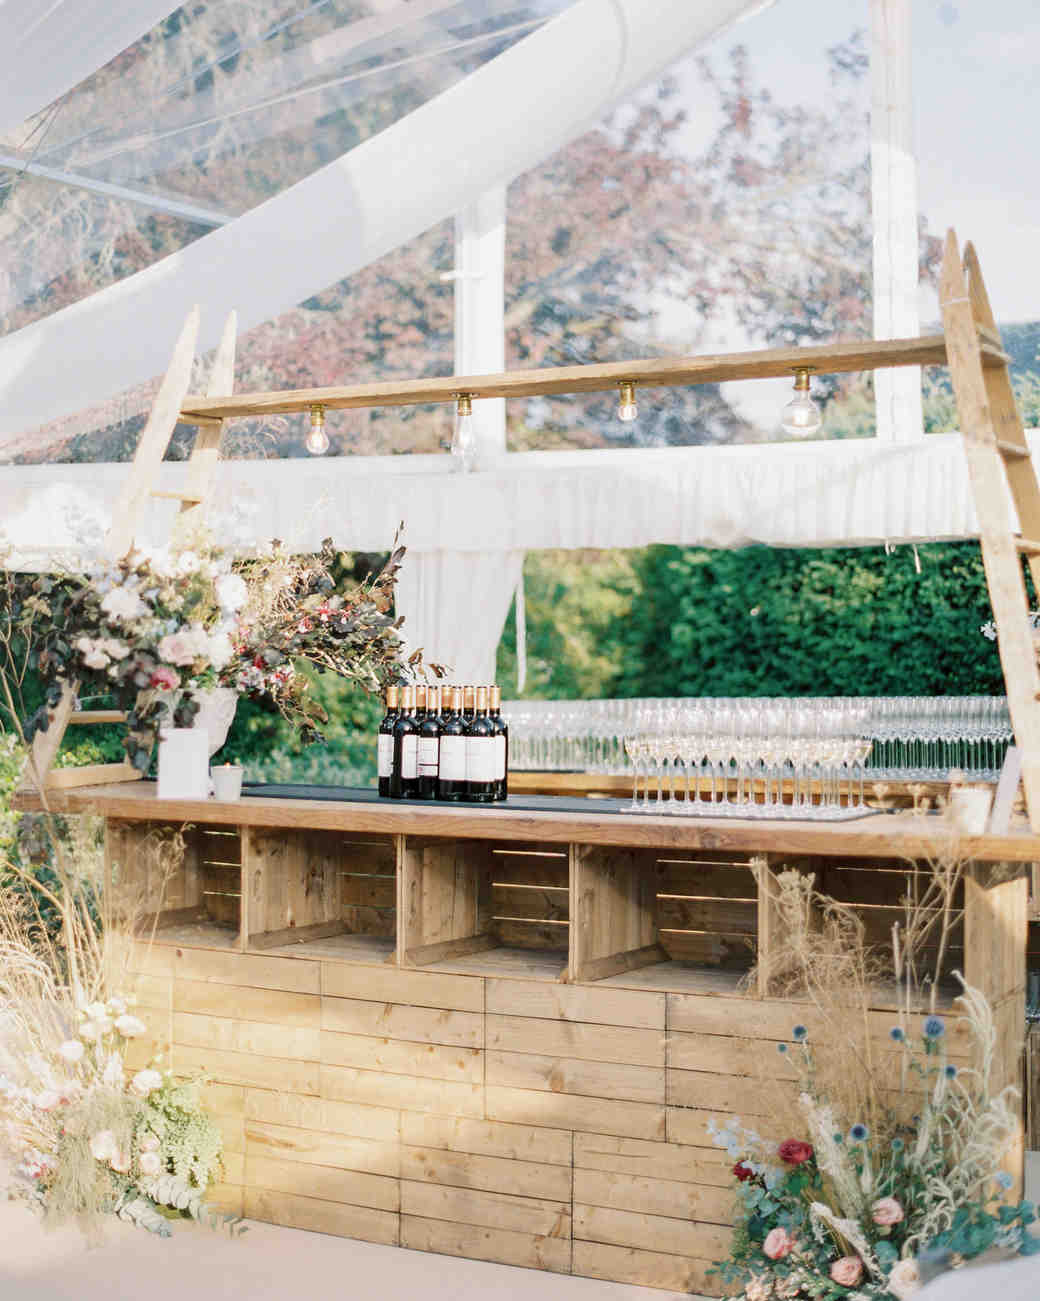 apple crates and ladders built rustic bar